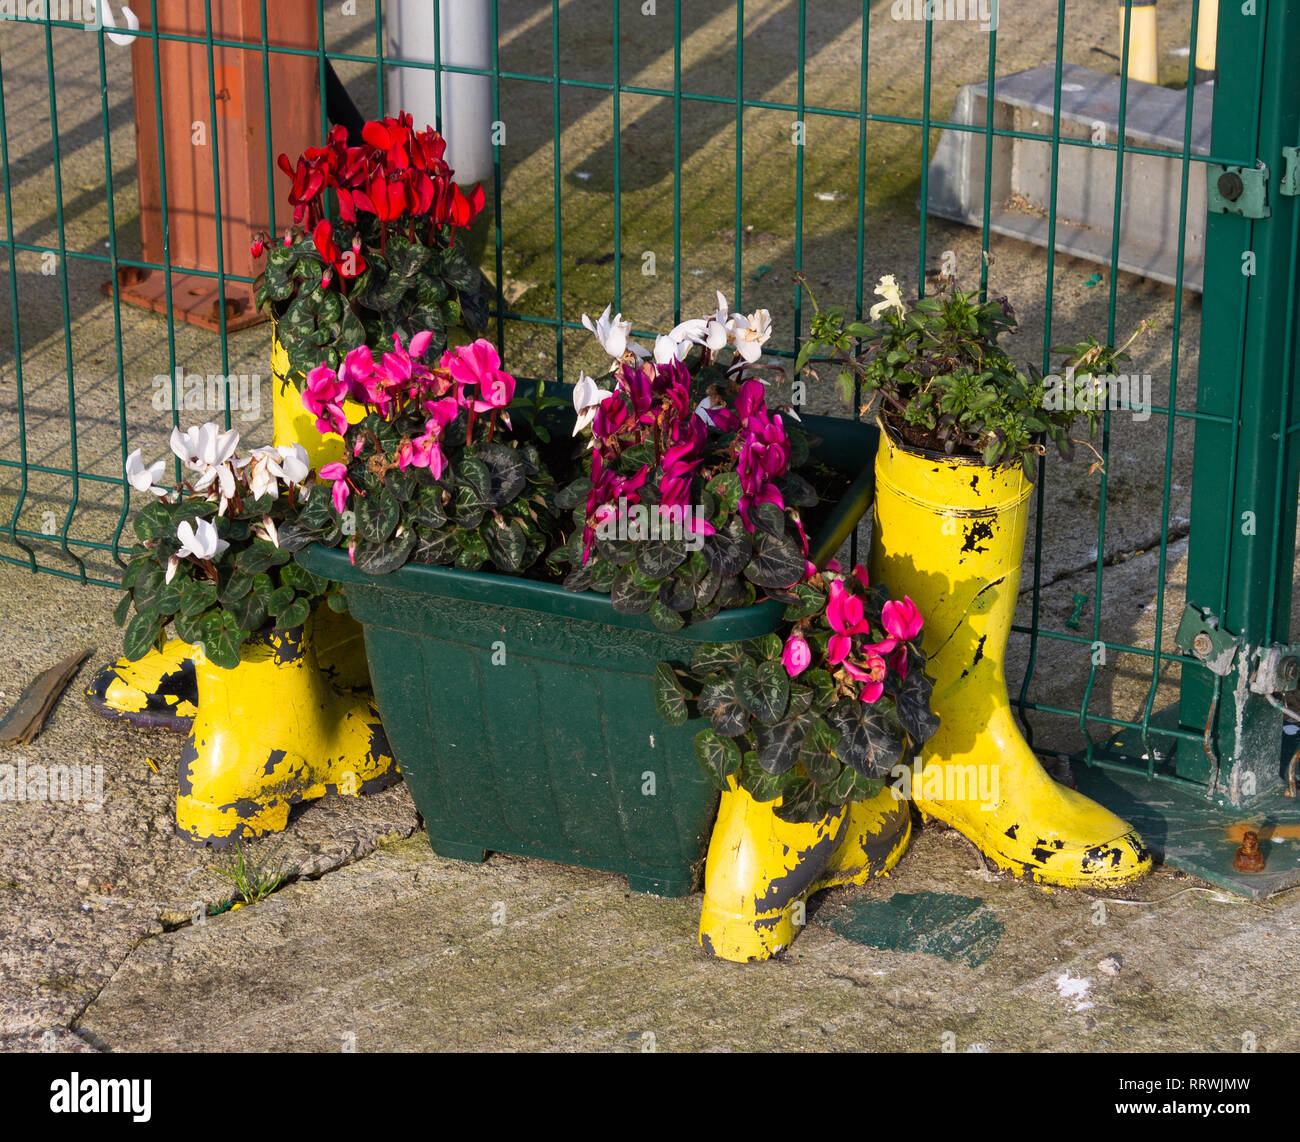 flowering cyclamens planted in box planters, yellow wellington boot planters or plant pots Stock Photo